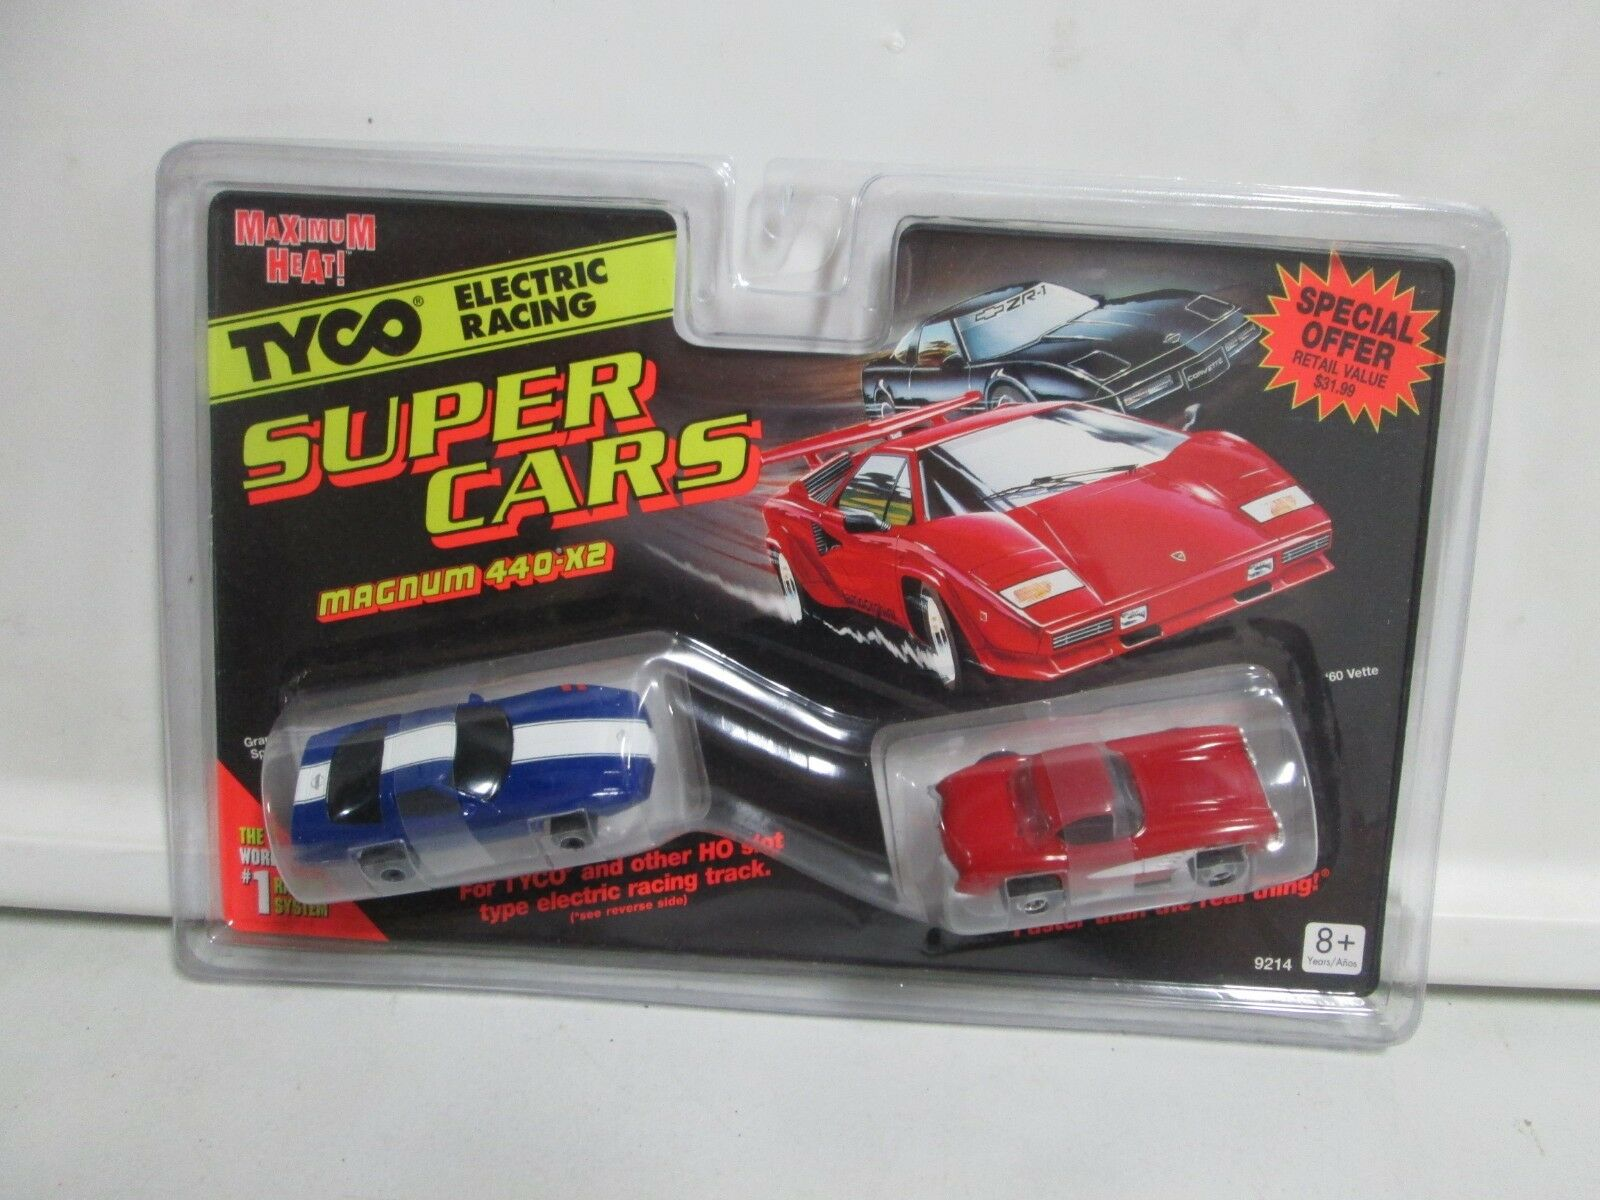 TYCO ELECTRIC RACING voitures Super Magnum 440-X2 Grand Sport &'60 Vette HO Scale